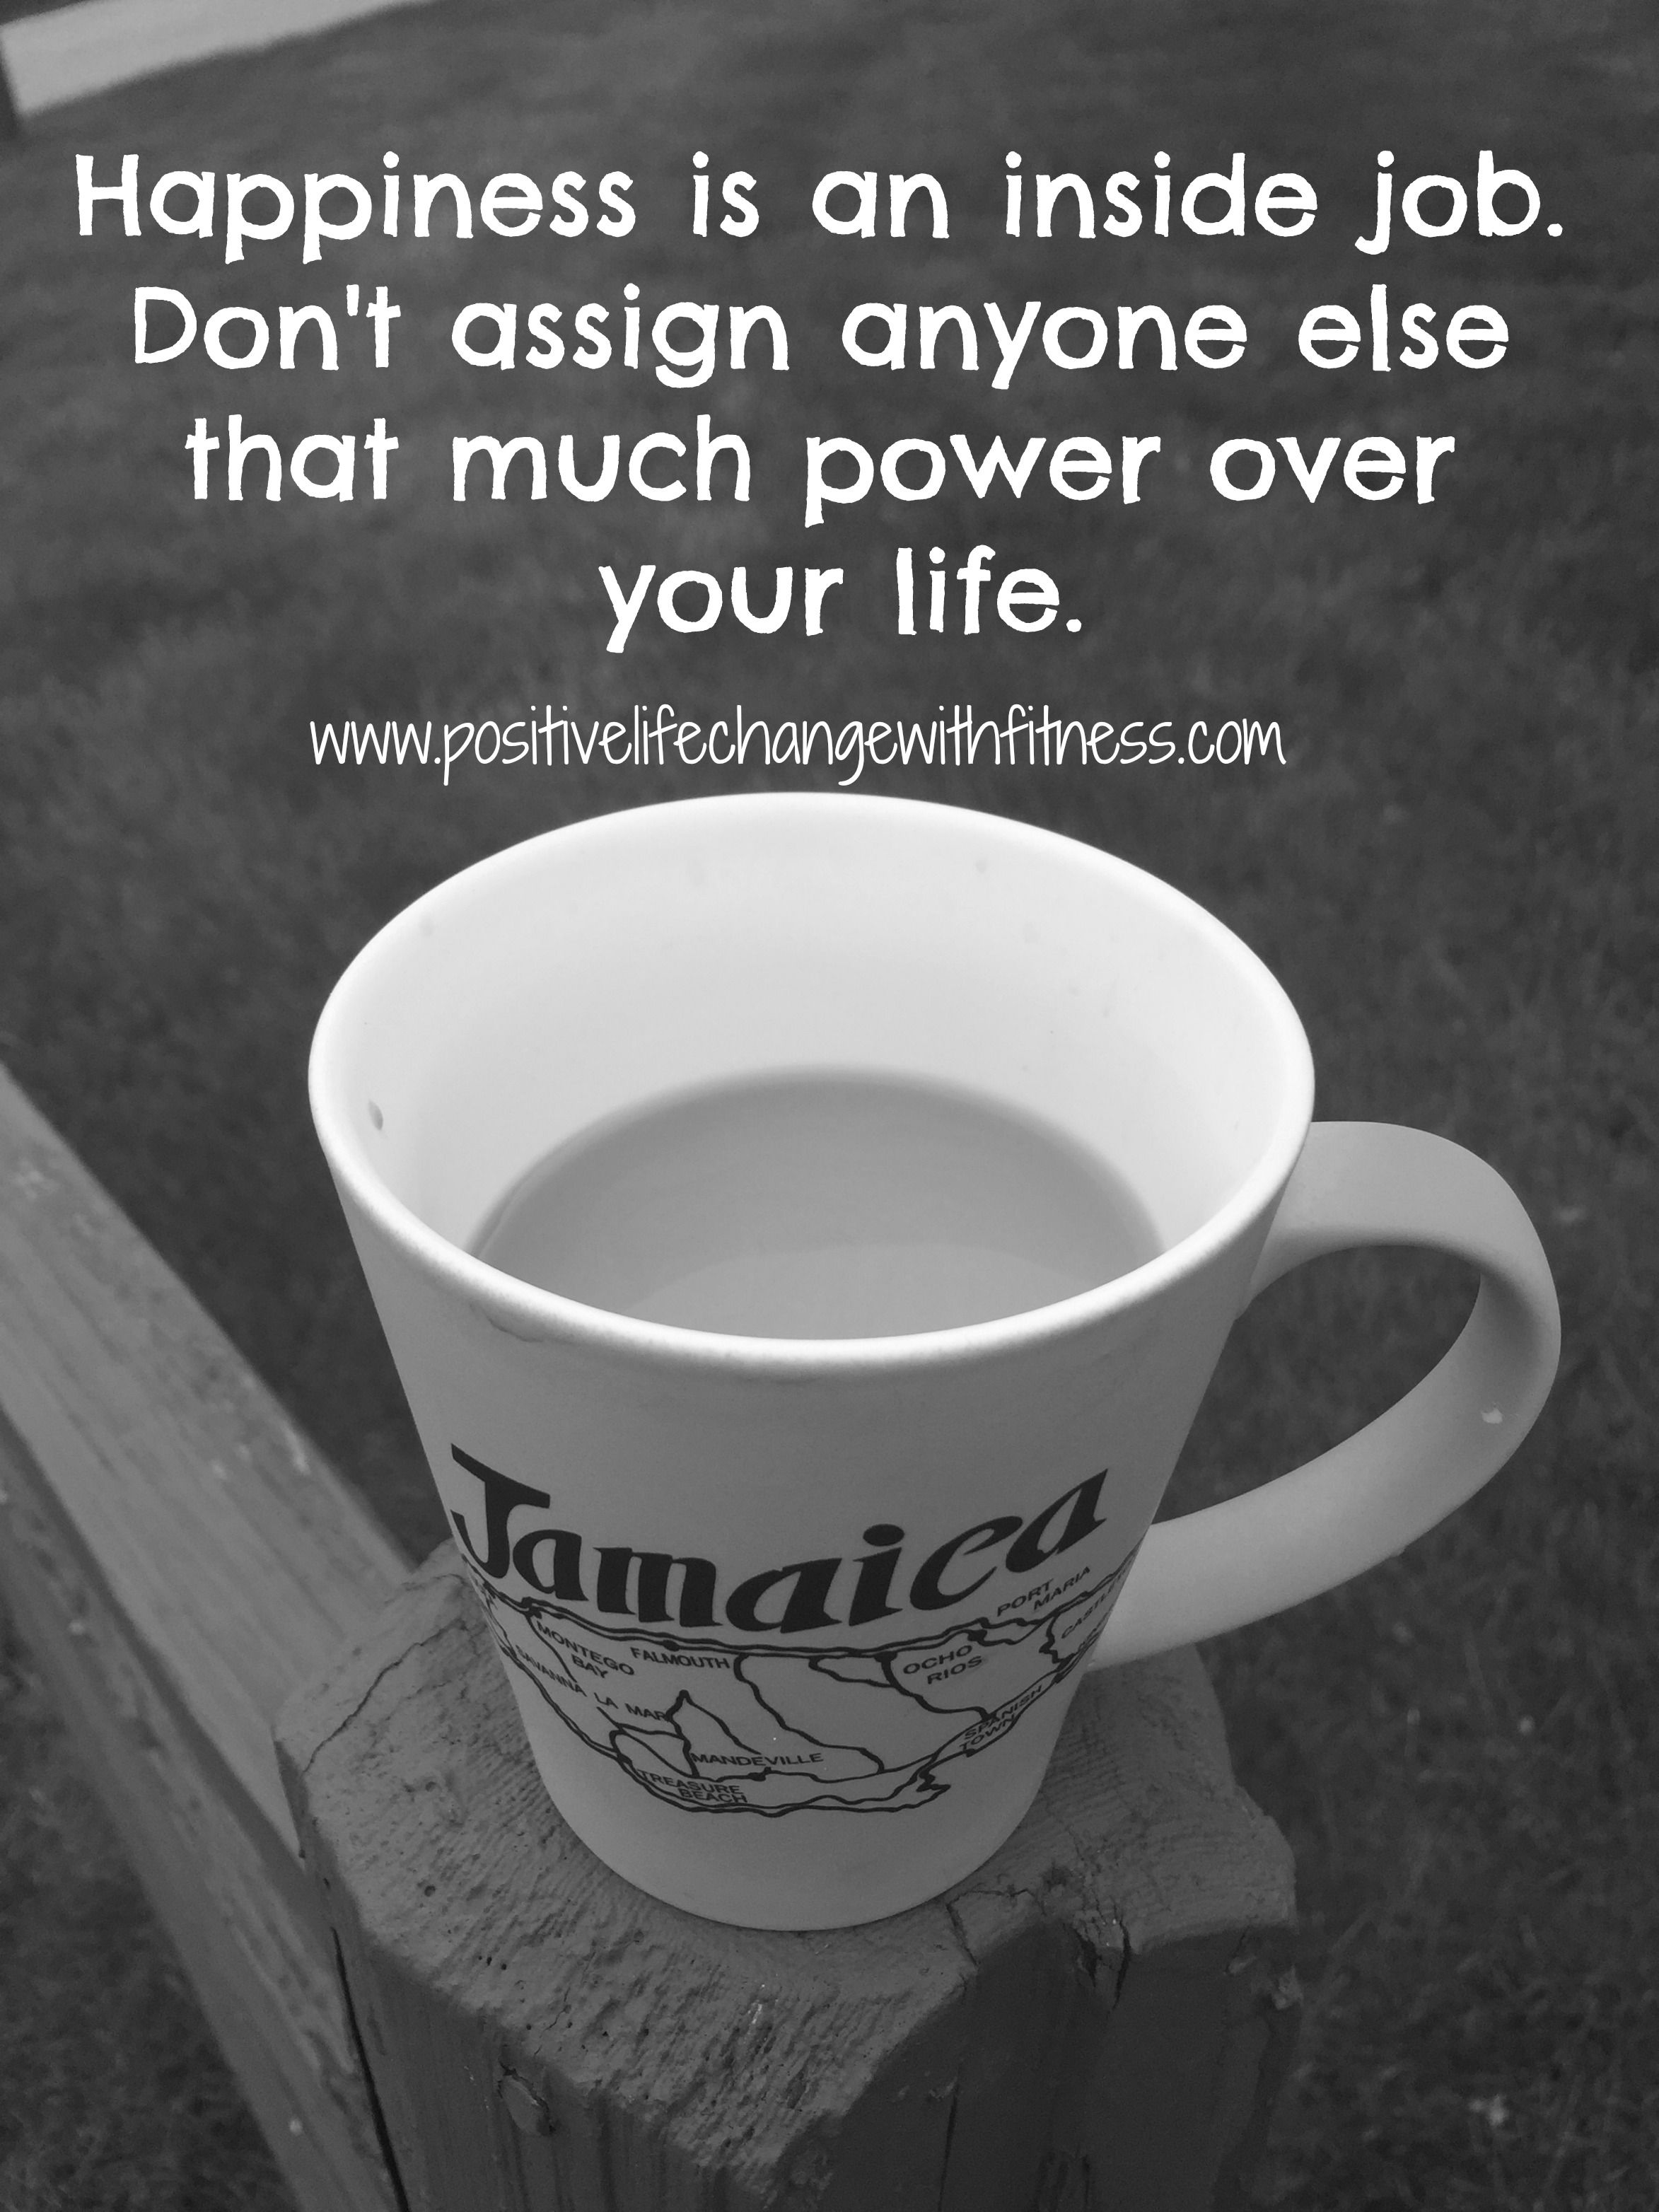 DON'T LET ANYONE ELSE TAKE YOUR HAPPINESS! coffeetalk